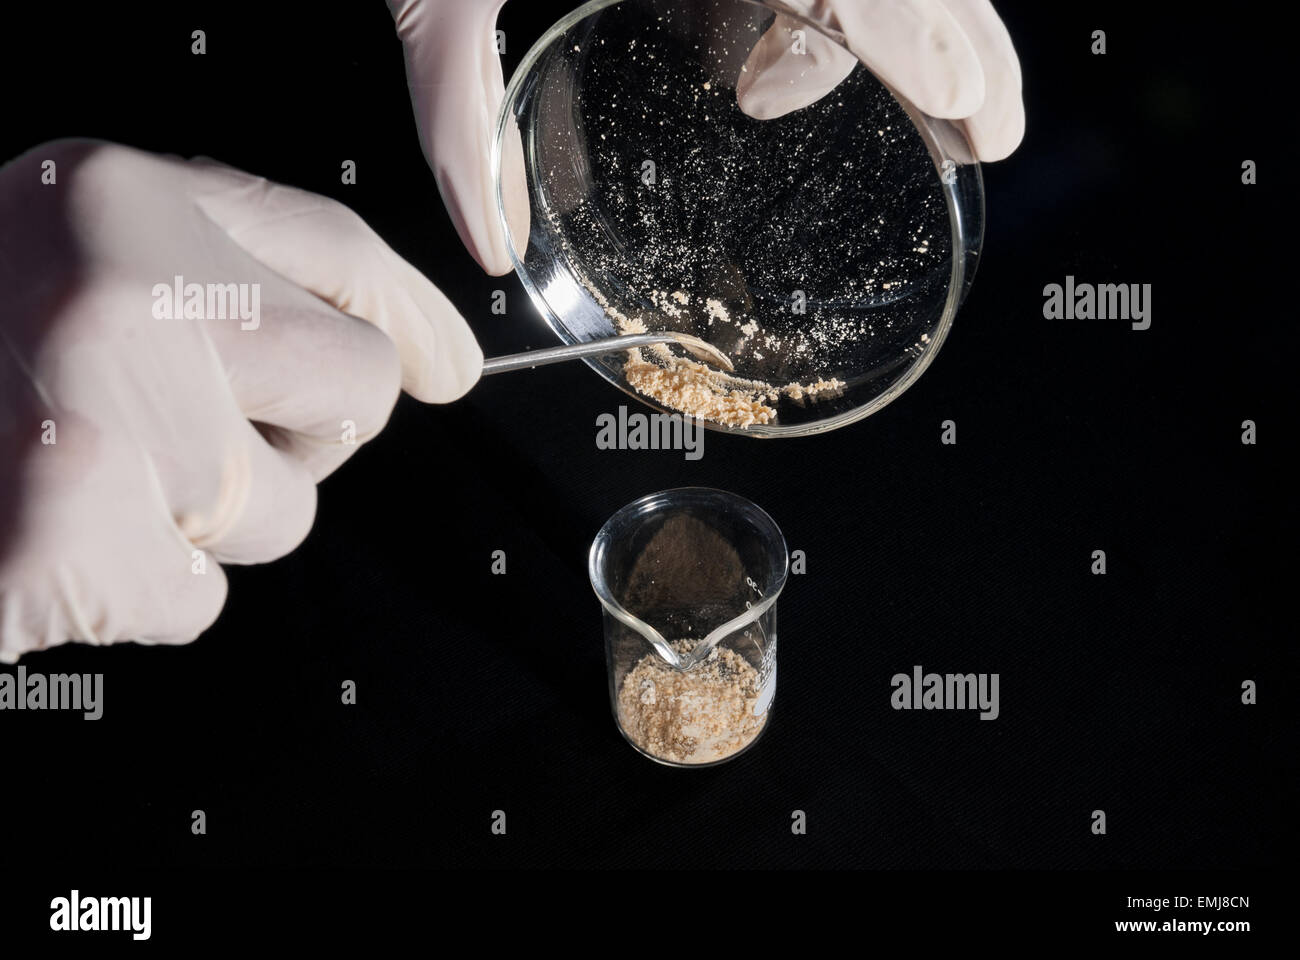 Probiotics made of fermented milk at The Indonesian Institute of Sciences. - Stock Image